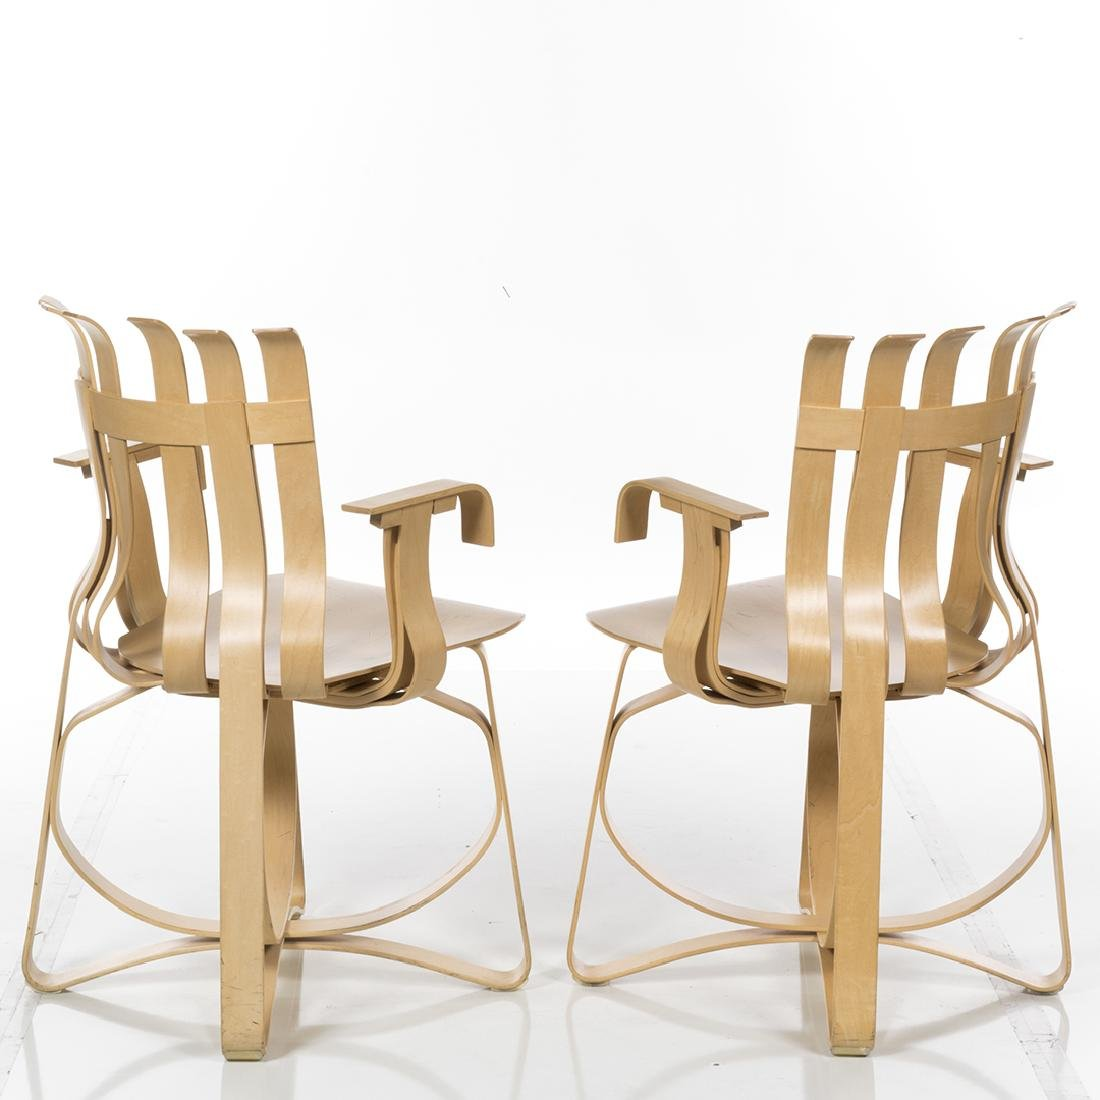 Frank Gehry Hat Trick Chairs (2) - 3